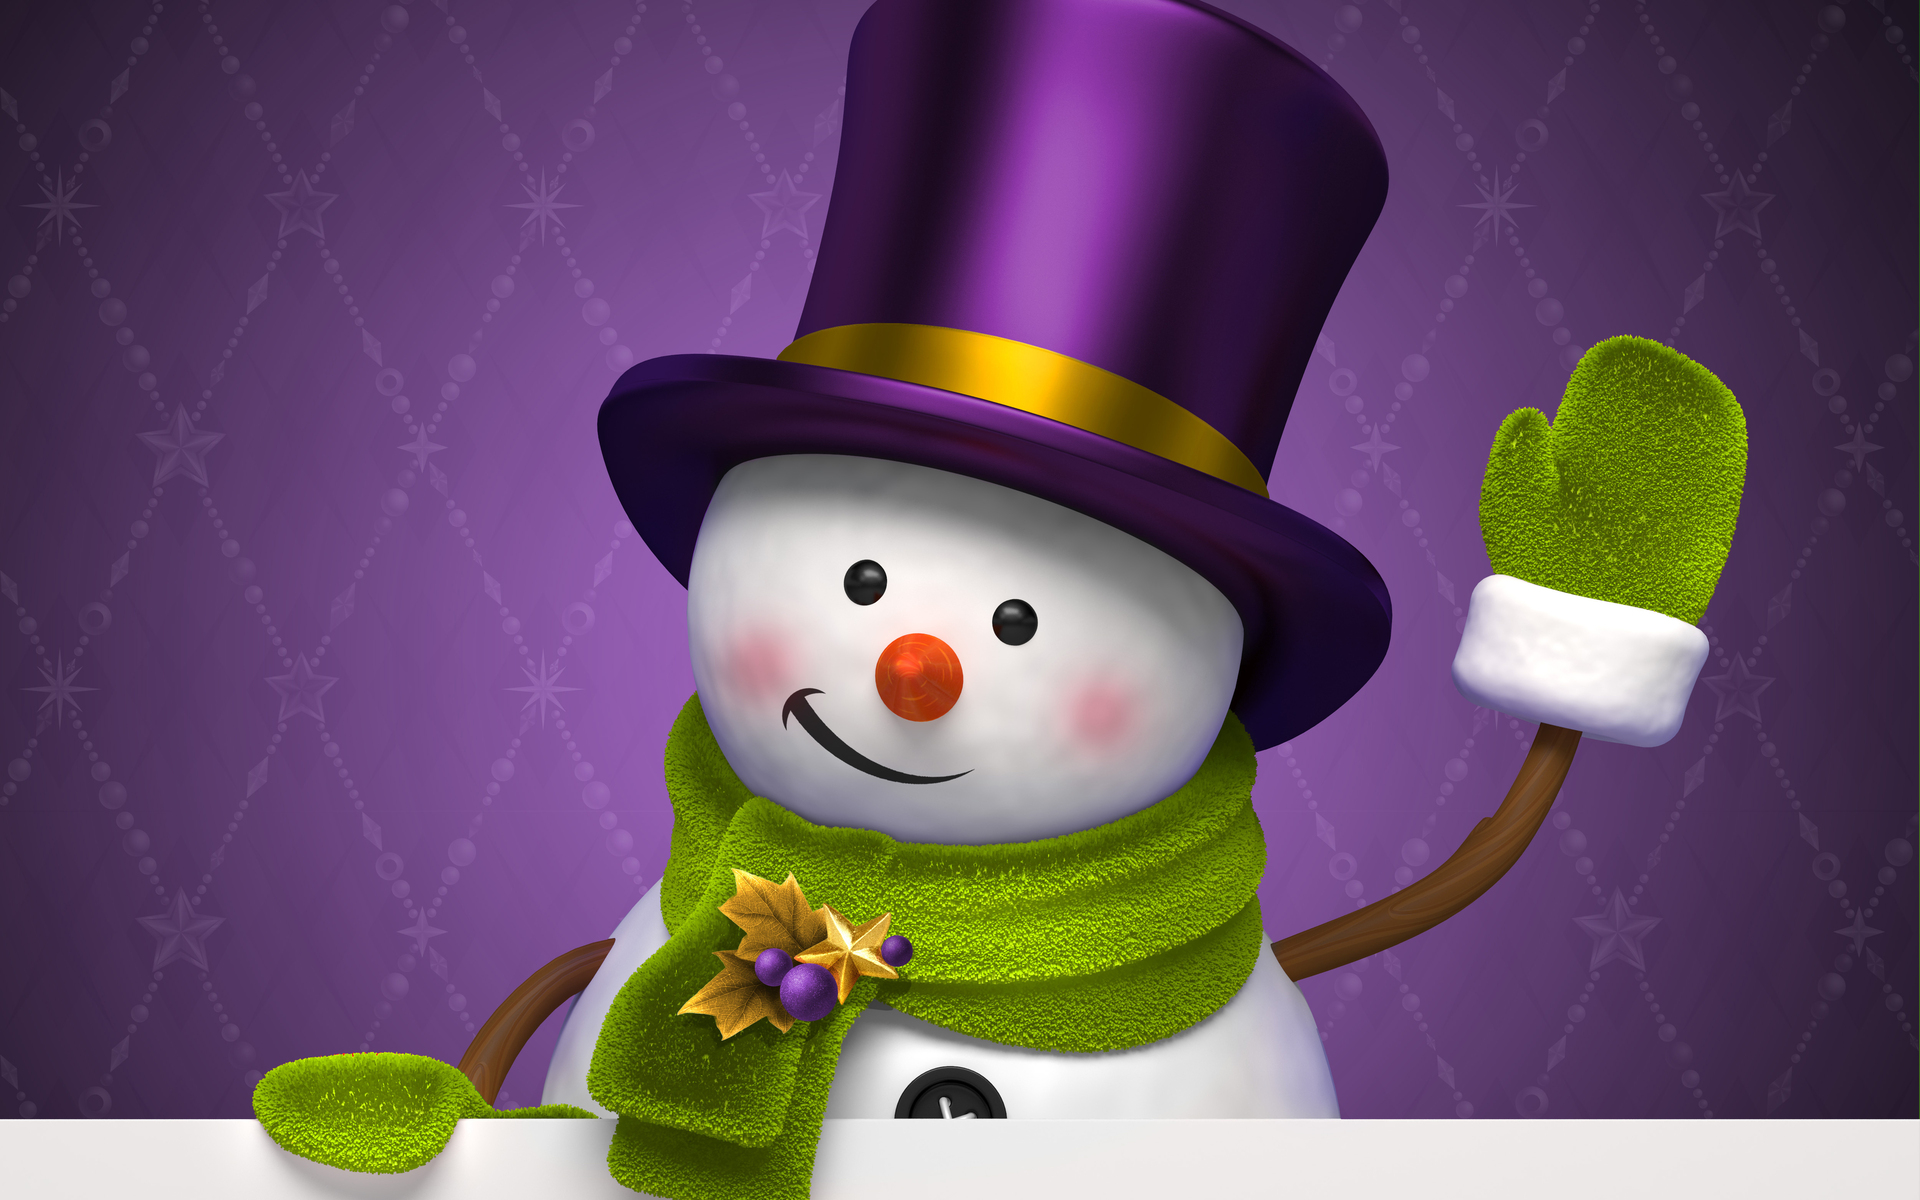 Snowman Wallpapers Pictures Images 1920x1200